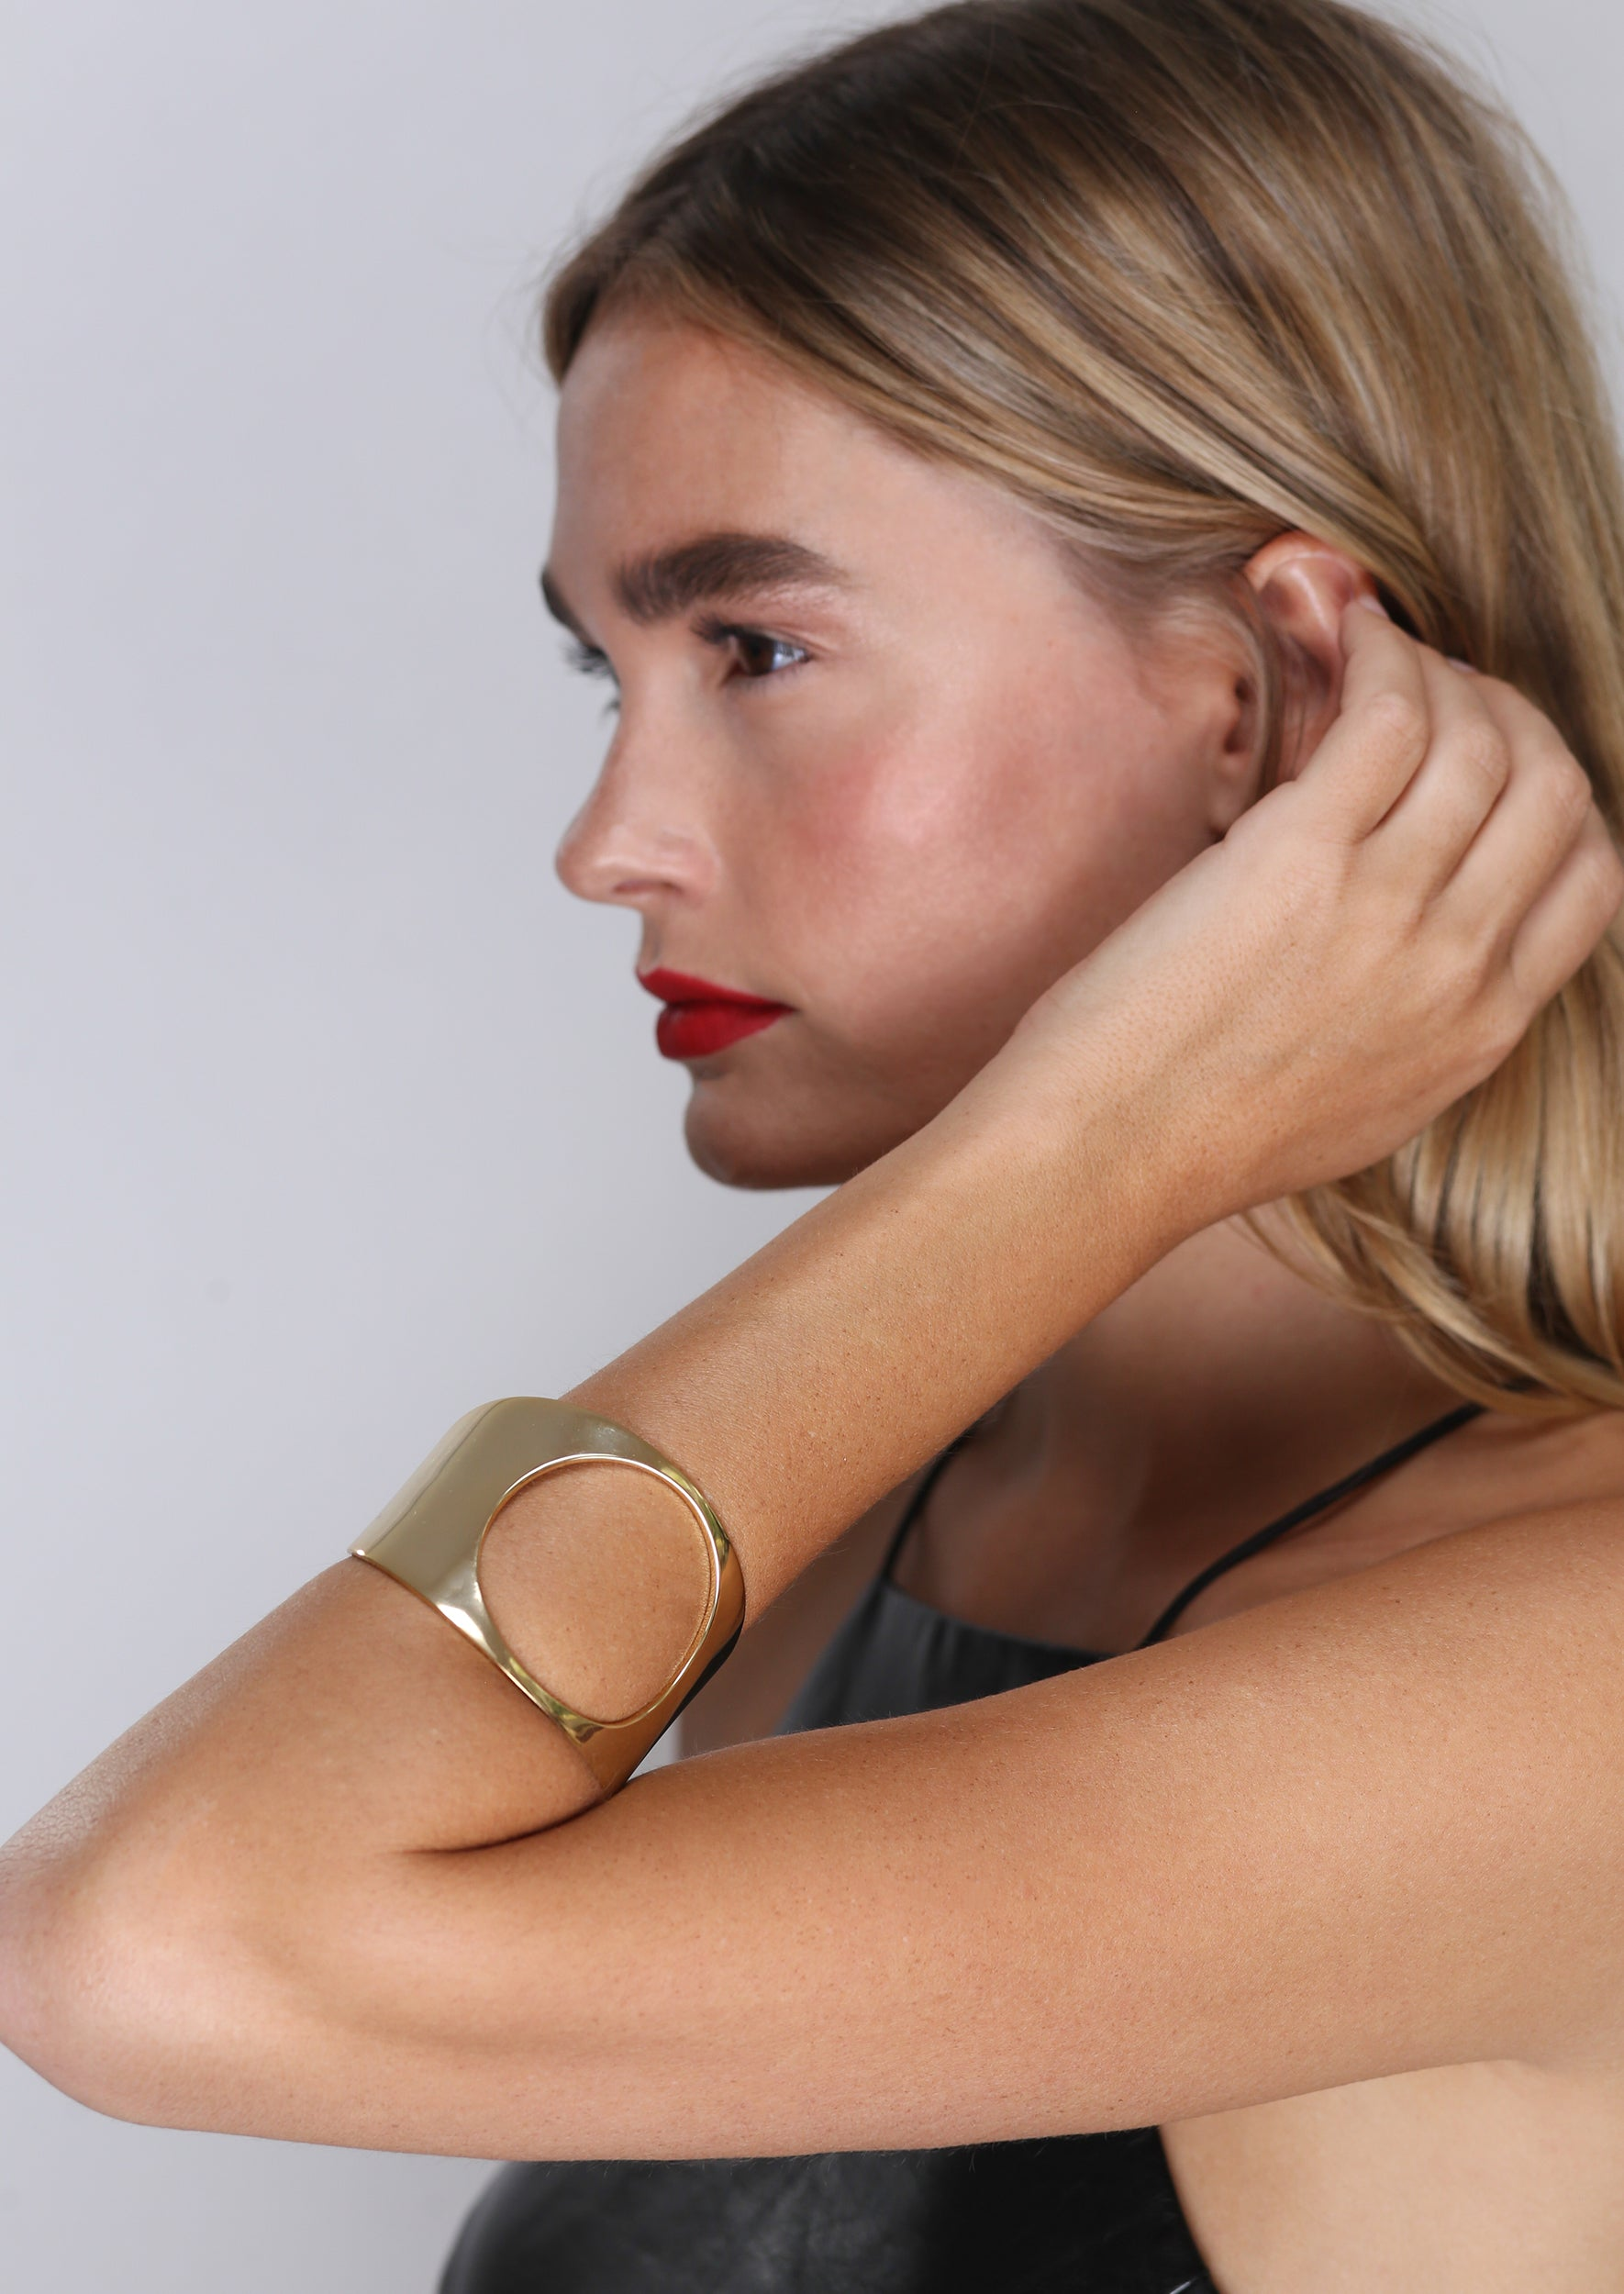 Euclid Cuff - Jules Smith - 14K Gold Plated - Boho Jewelry